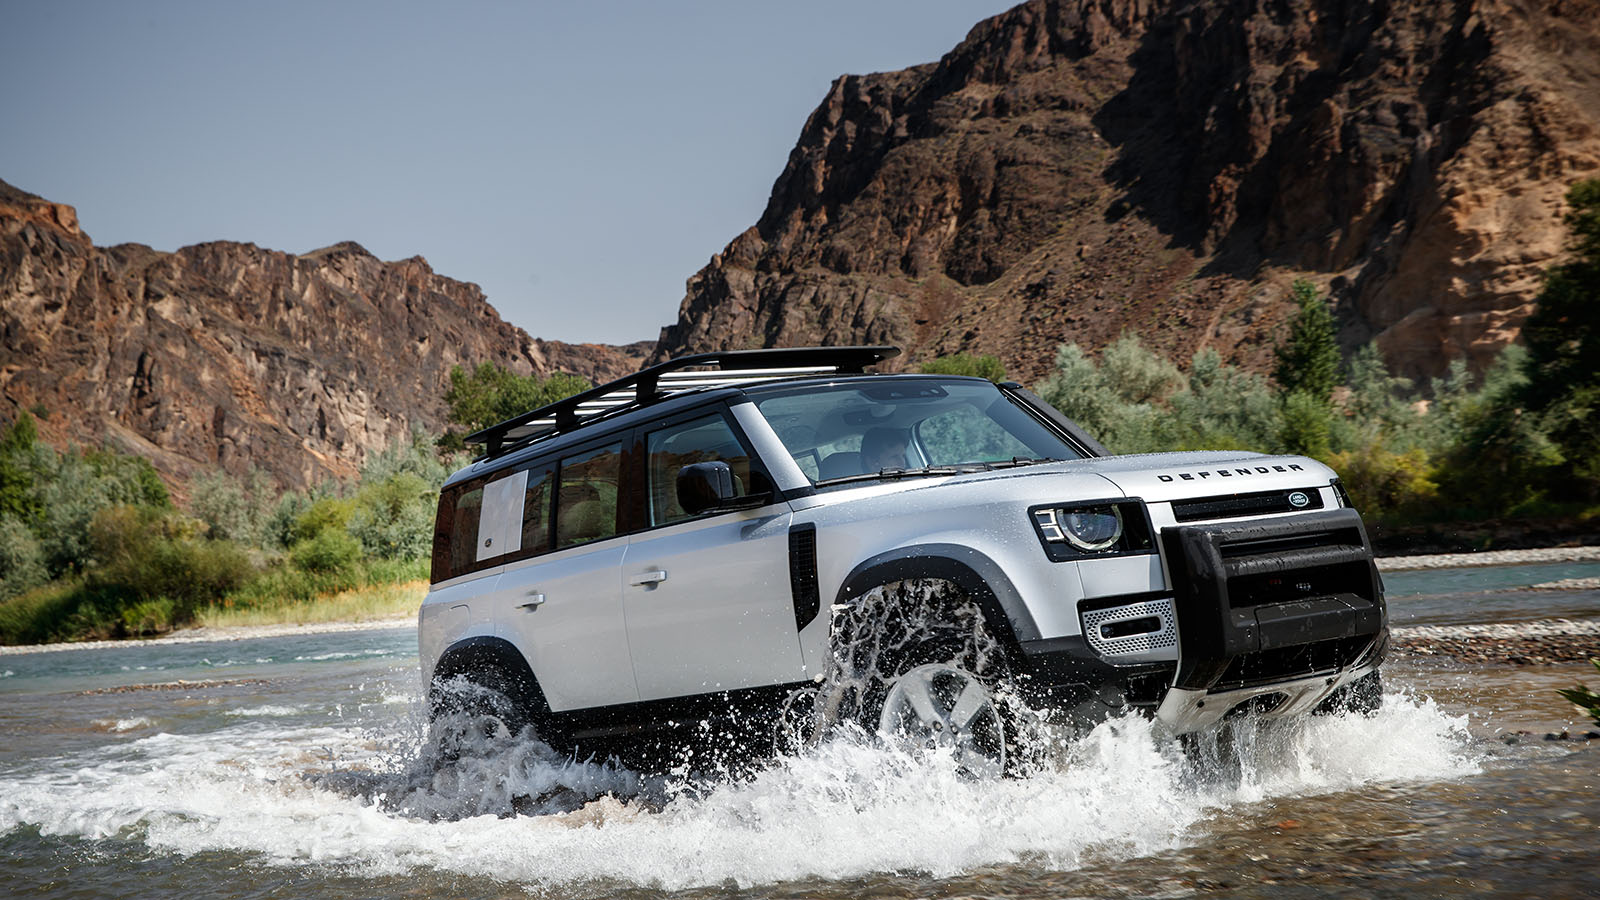 Thiết kế xe xe Land Rover Defender 2020